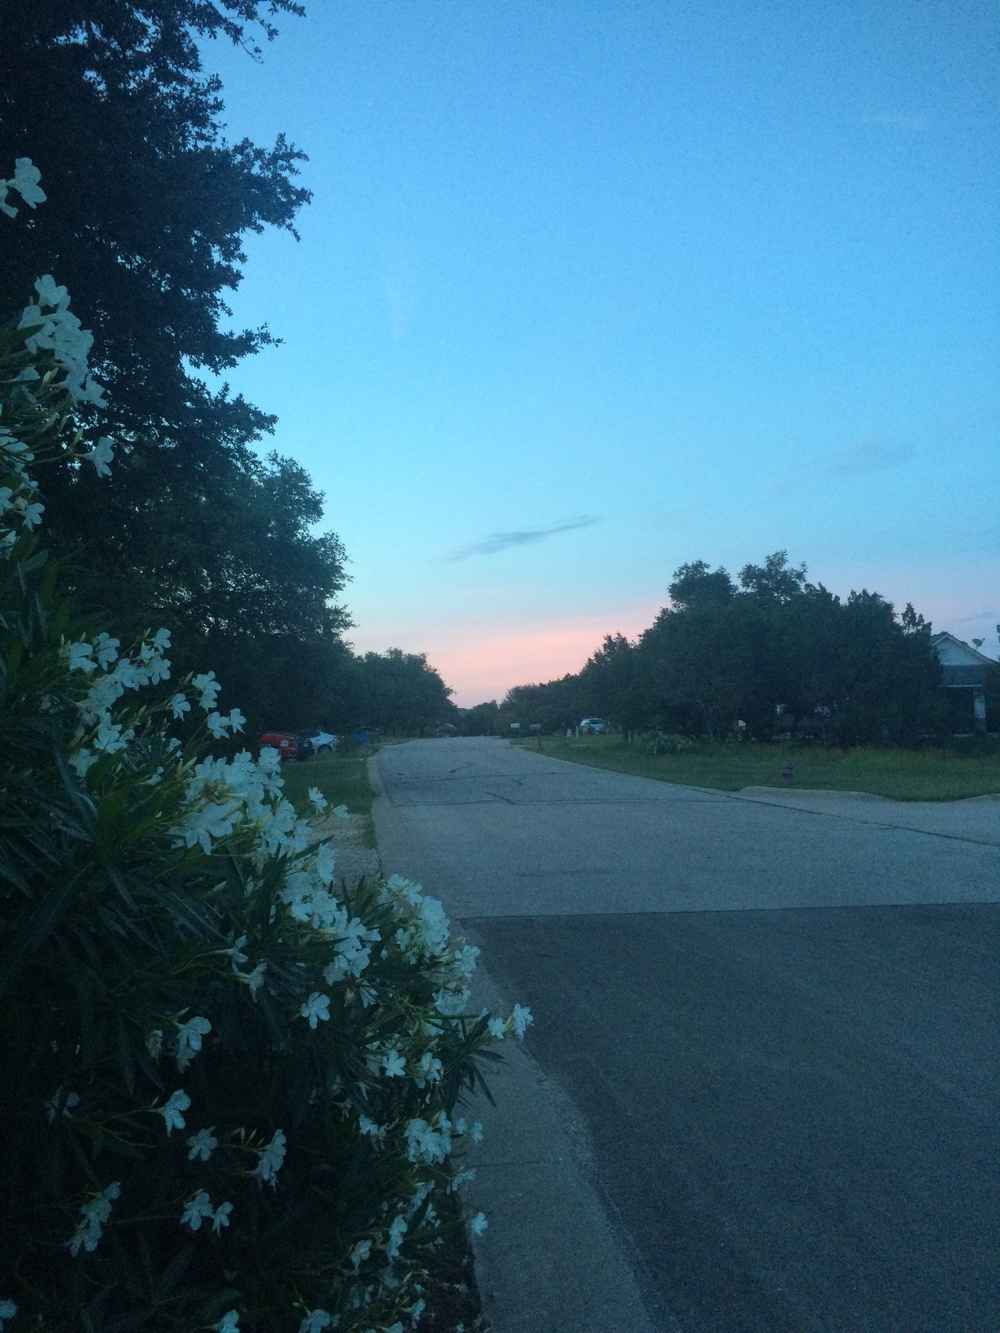 A dog walk complete with a dreamy sunset and the scent of white oleanders.